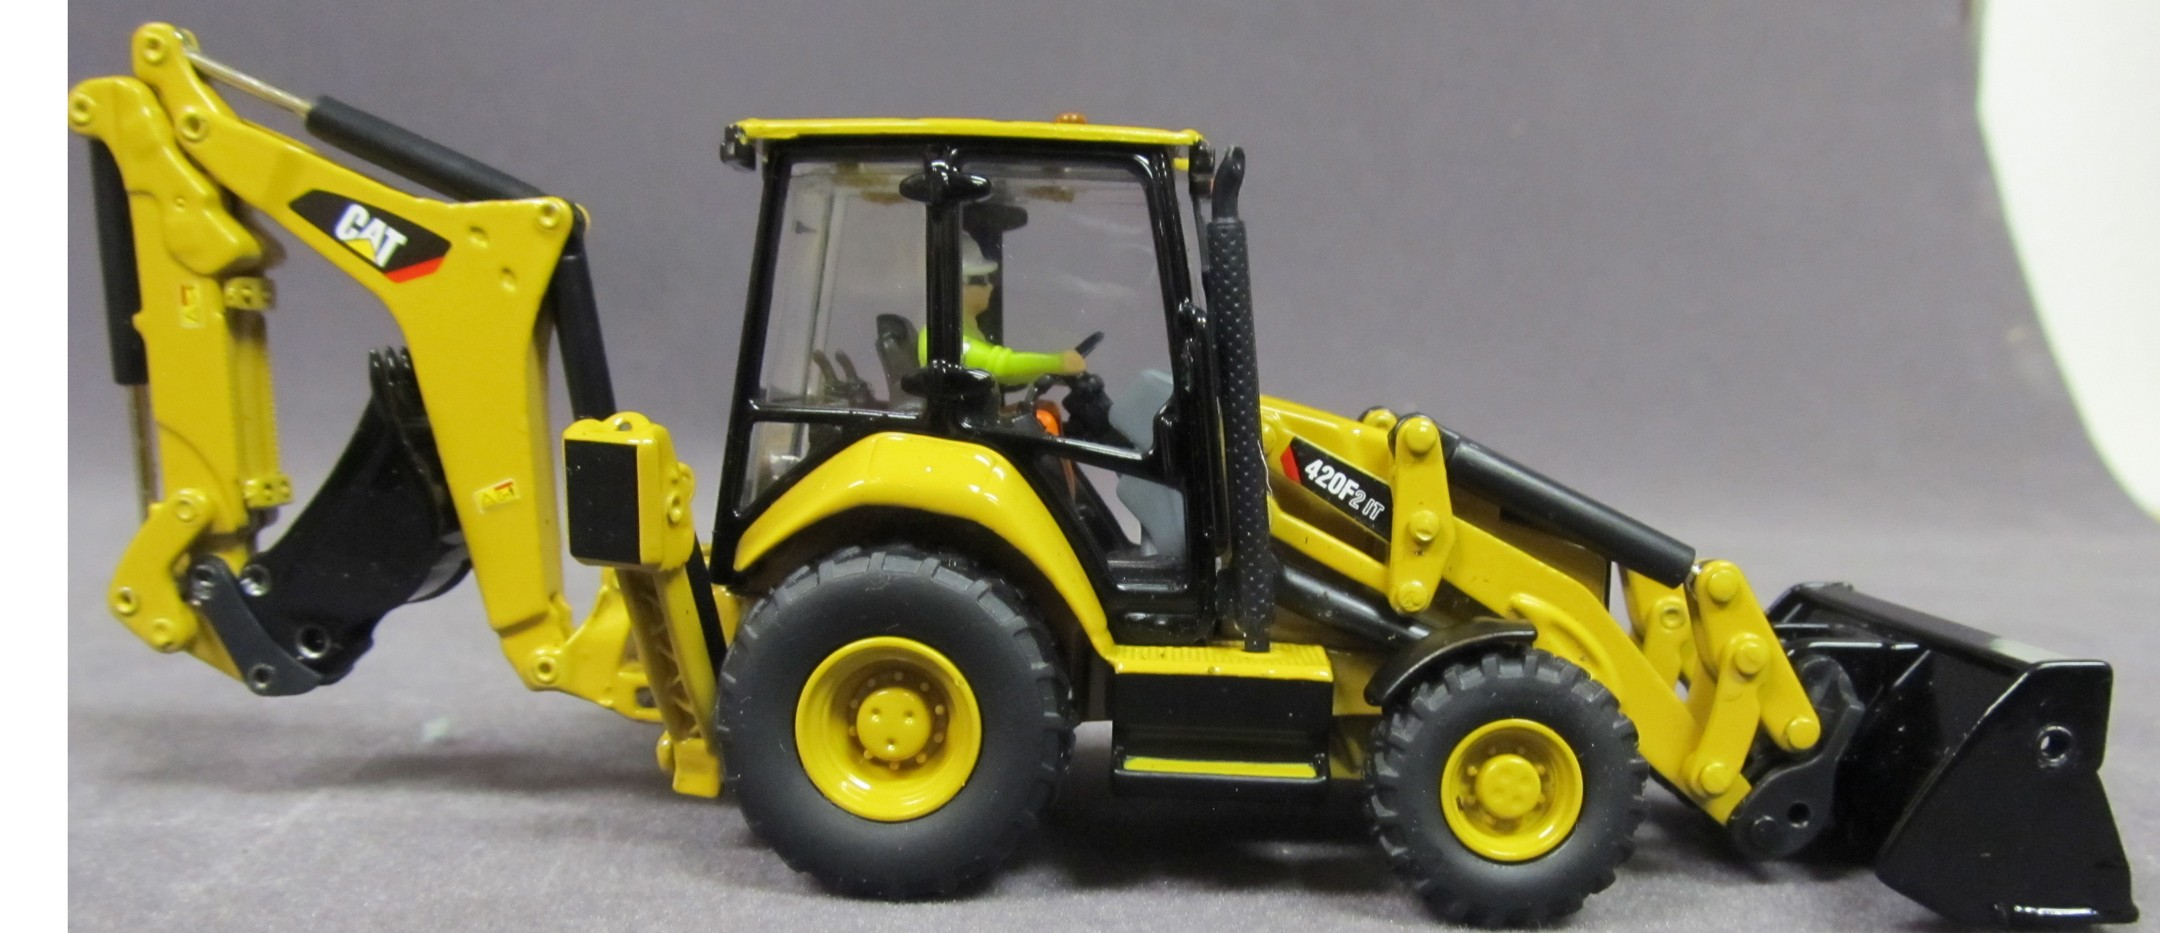 Caterpillar 420F2 IT Backhoe Loader